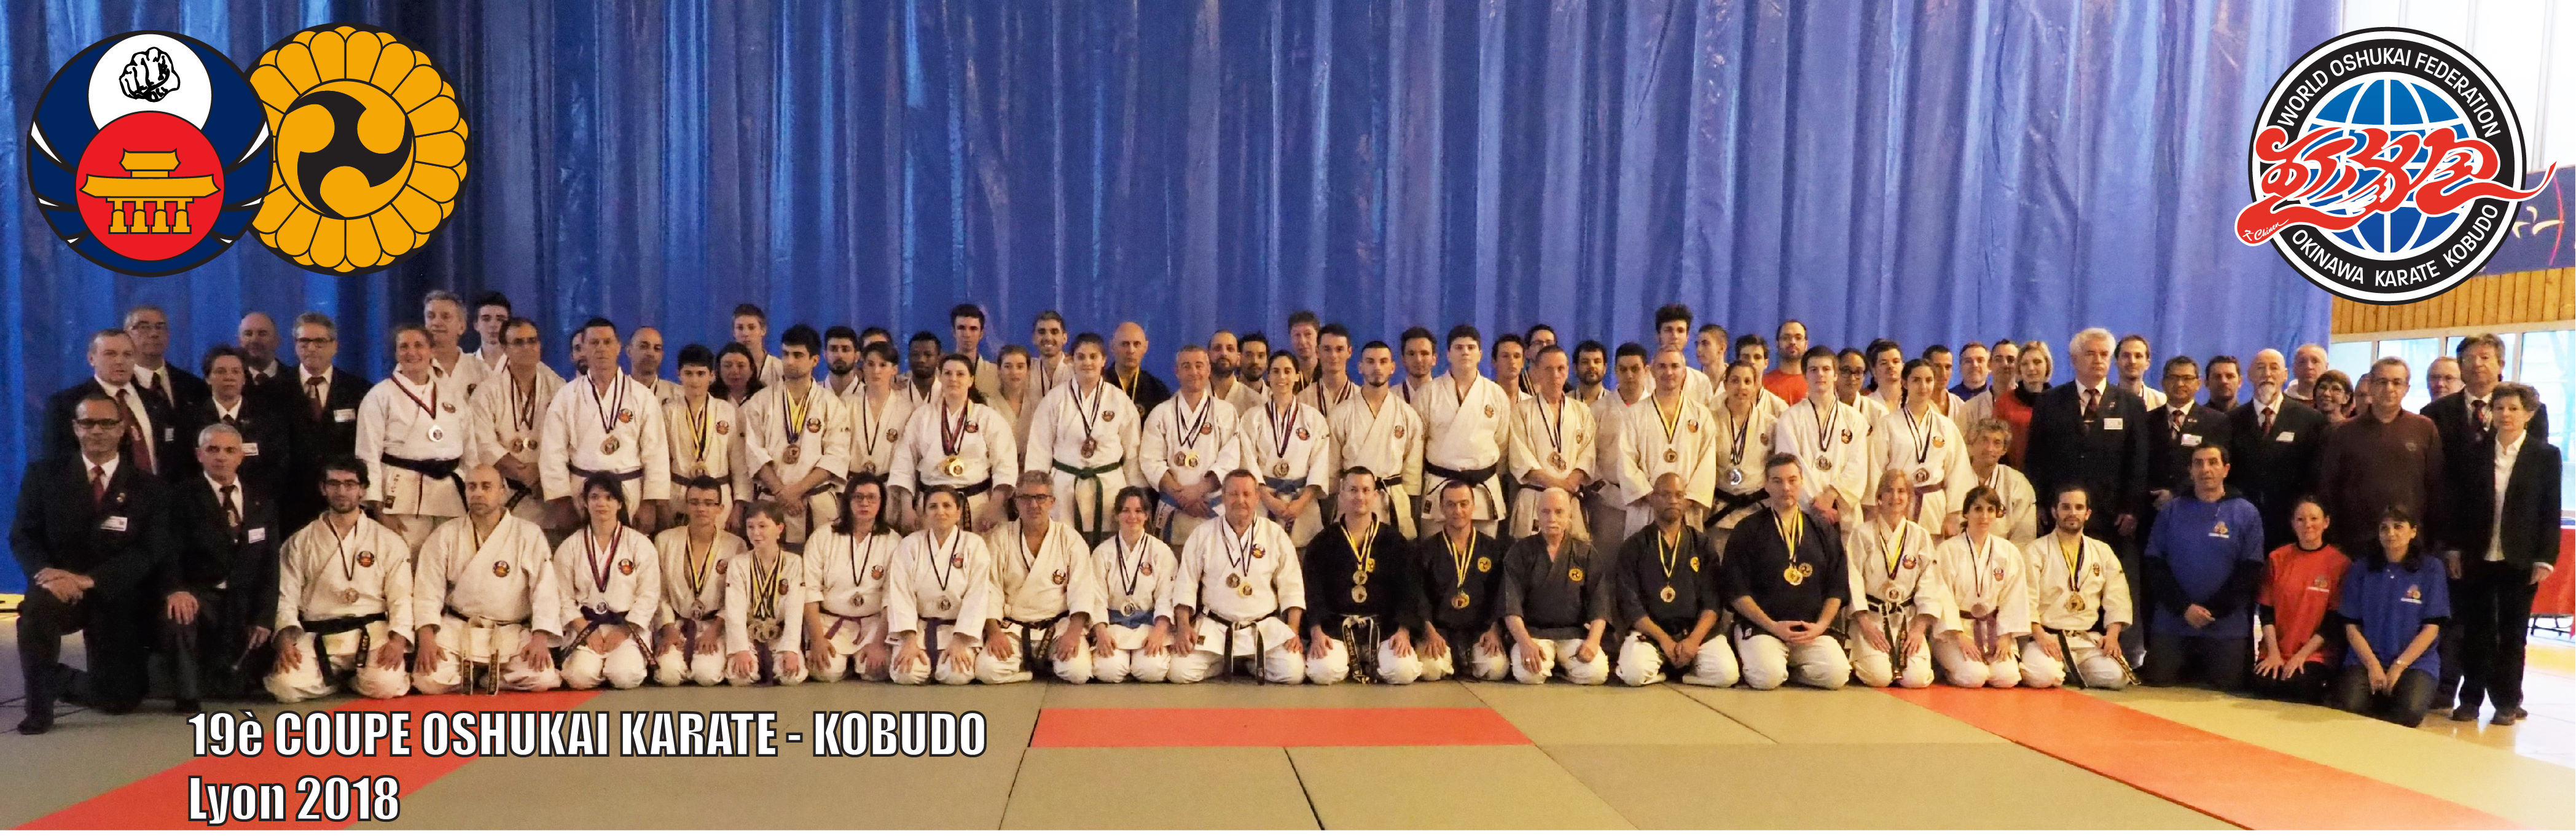 Coupe Oshukai France Karate Kobudo Lyon 2018